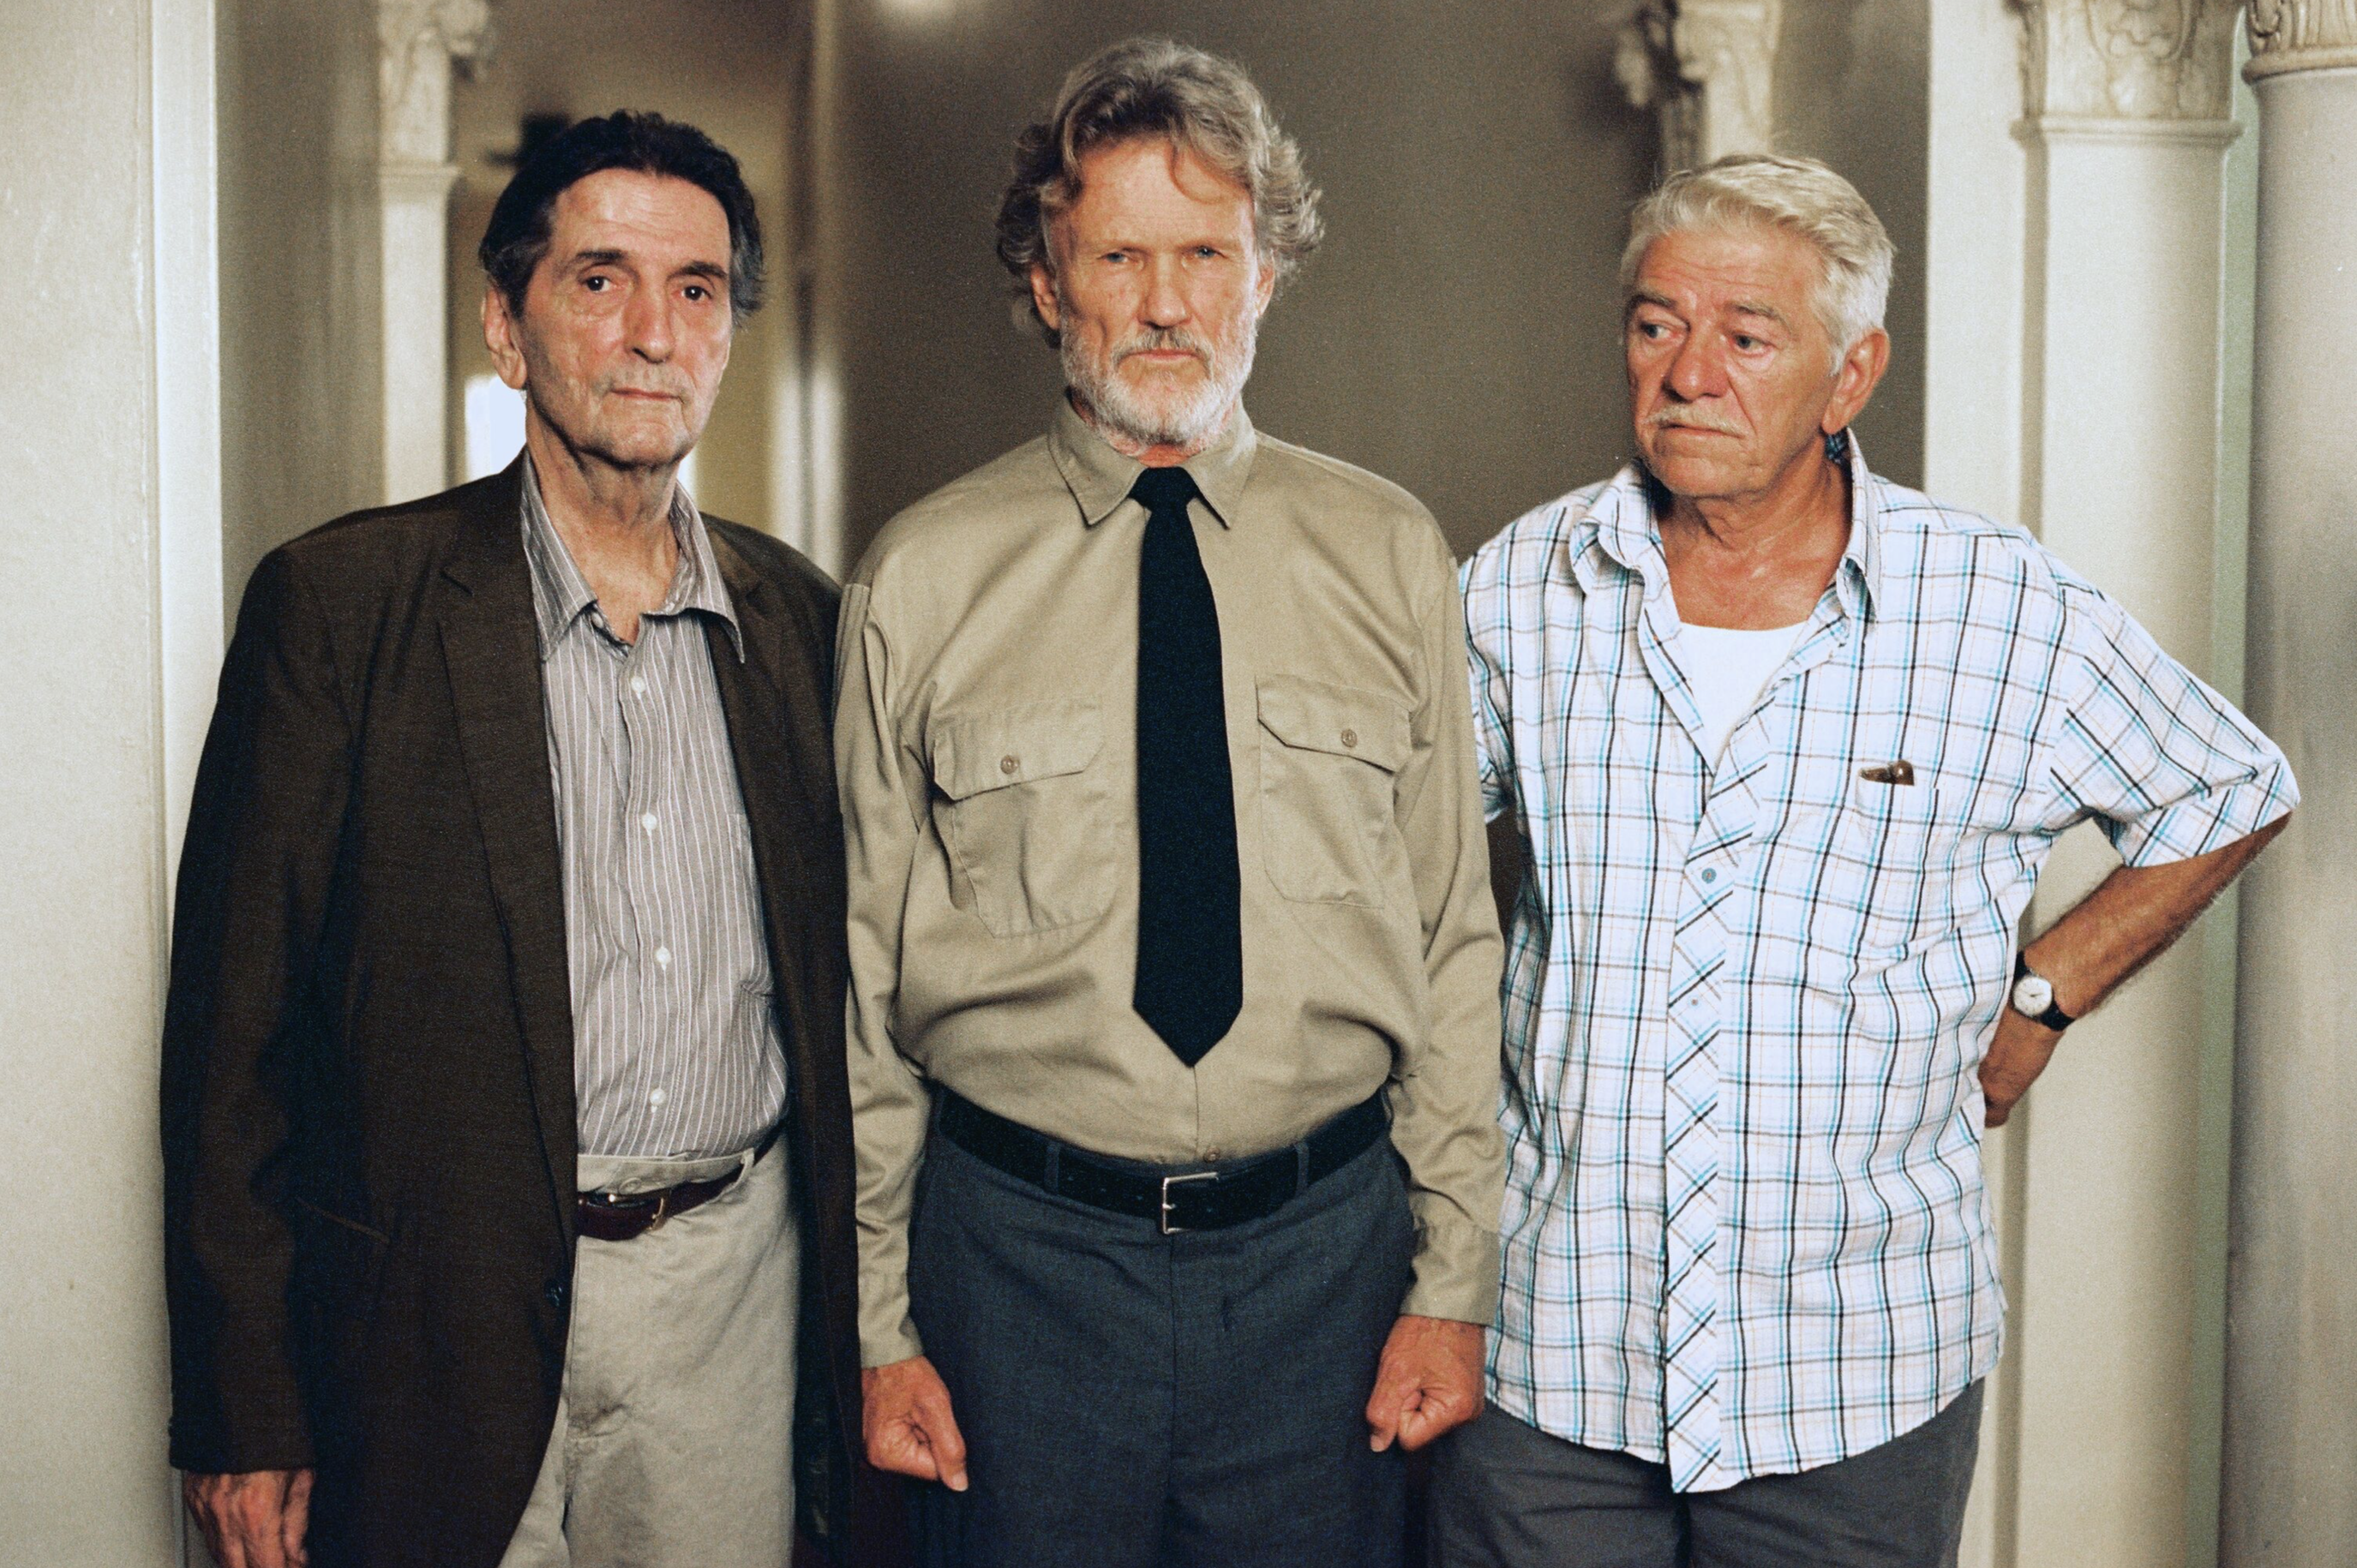 Harry Dean Stanton, Kris Kristofferson and Seymour Cassel Austin, Texas, 2003